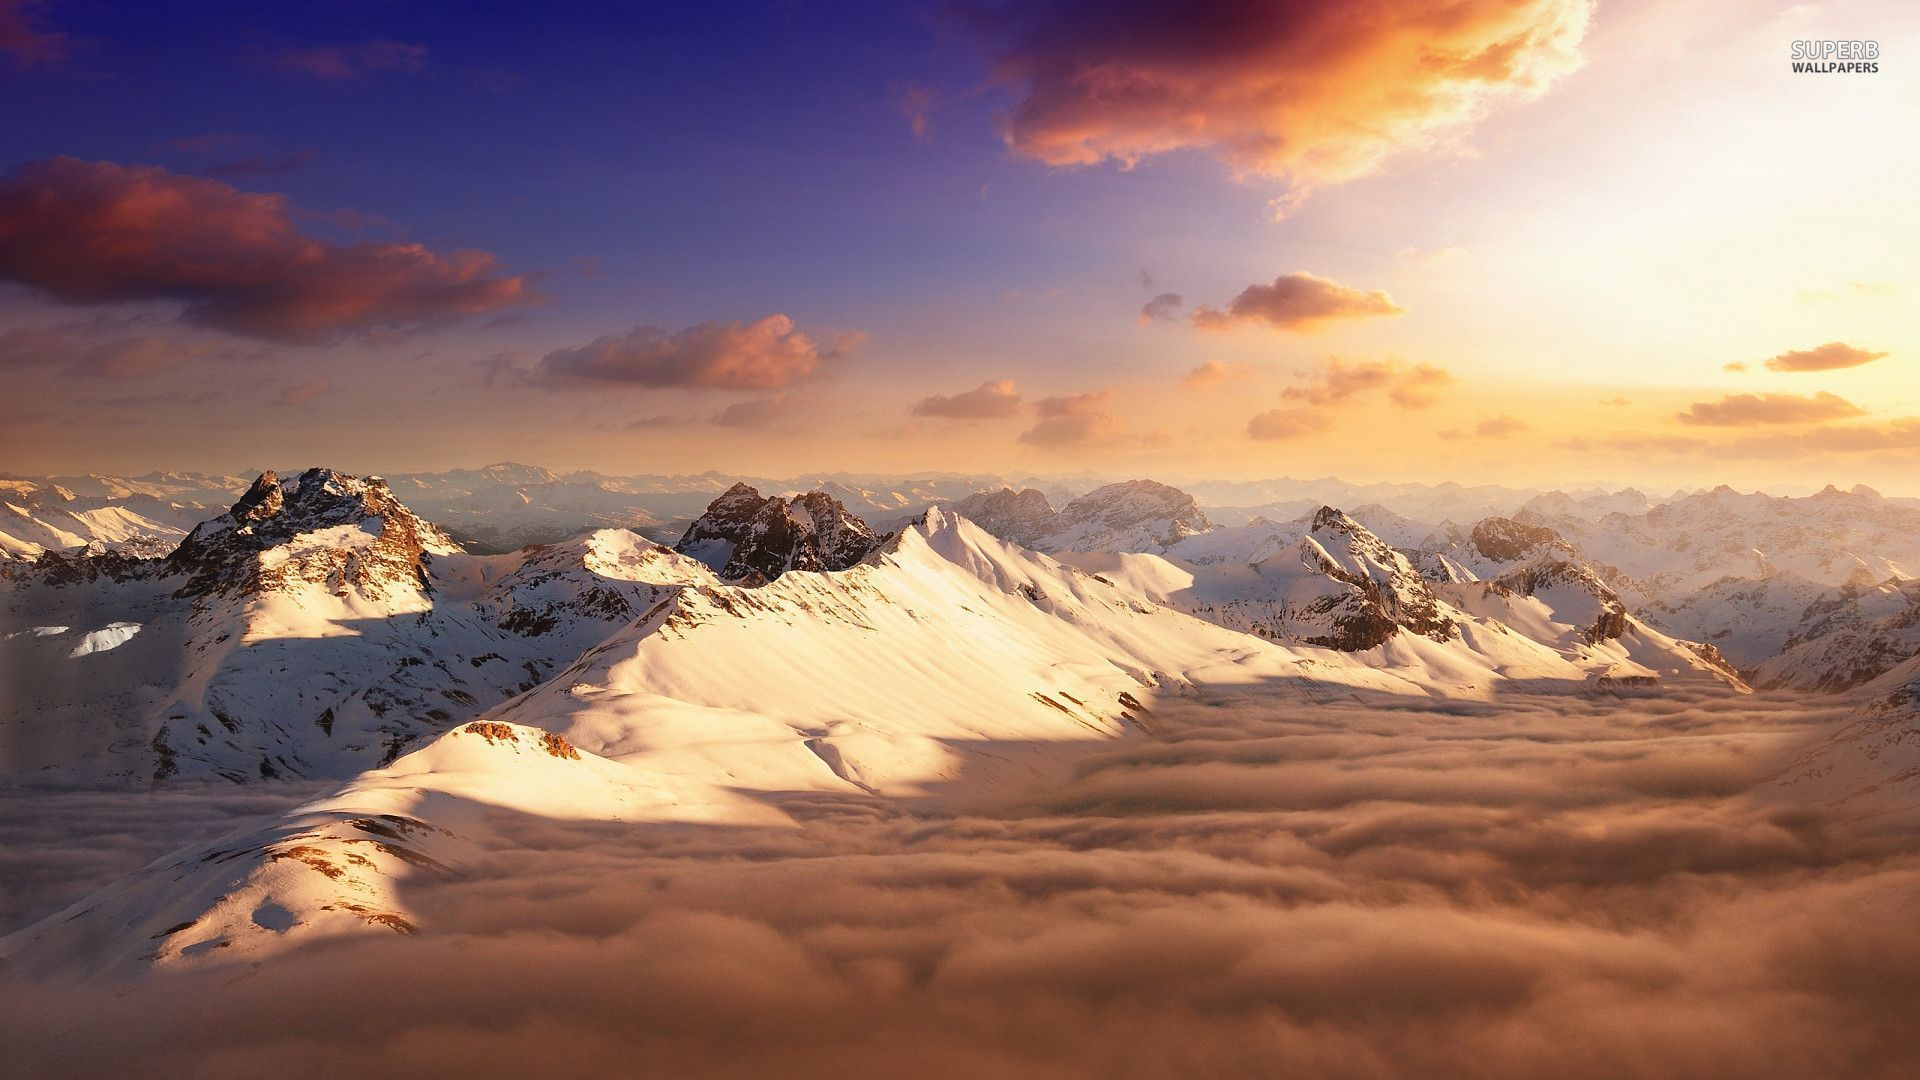 Snowy Mountain Peaks Above The Clouds Wallpaper 1920x1080 صور